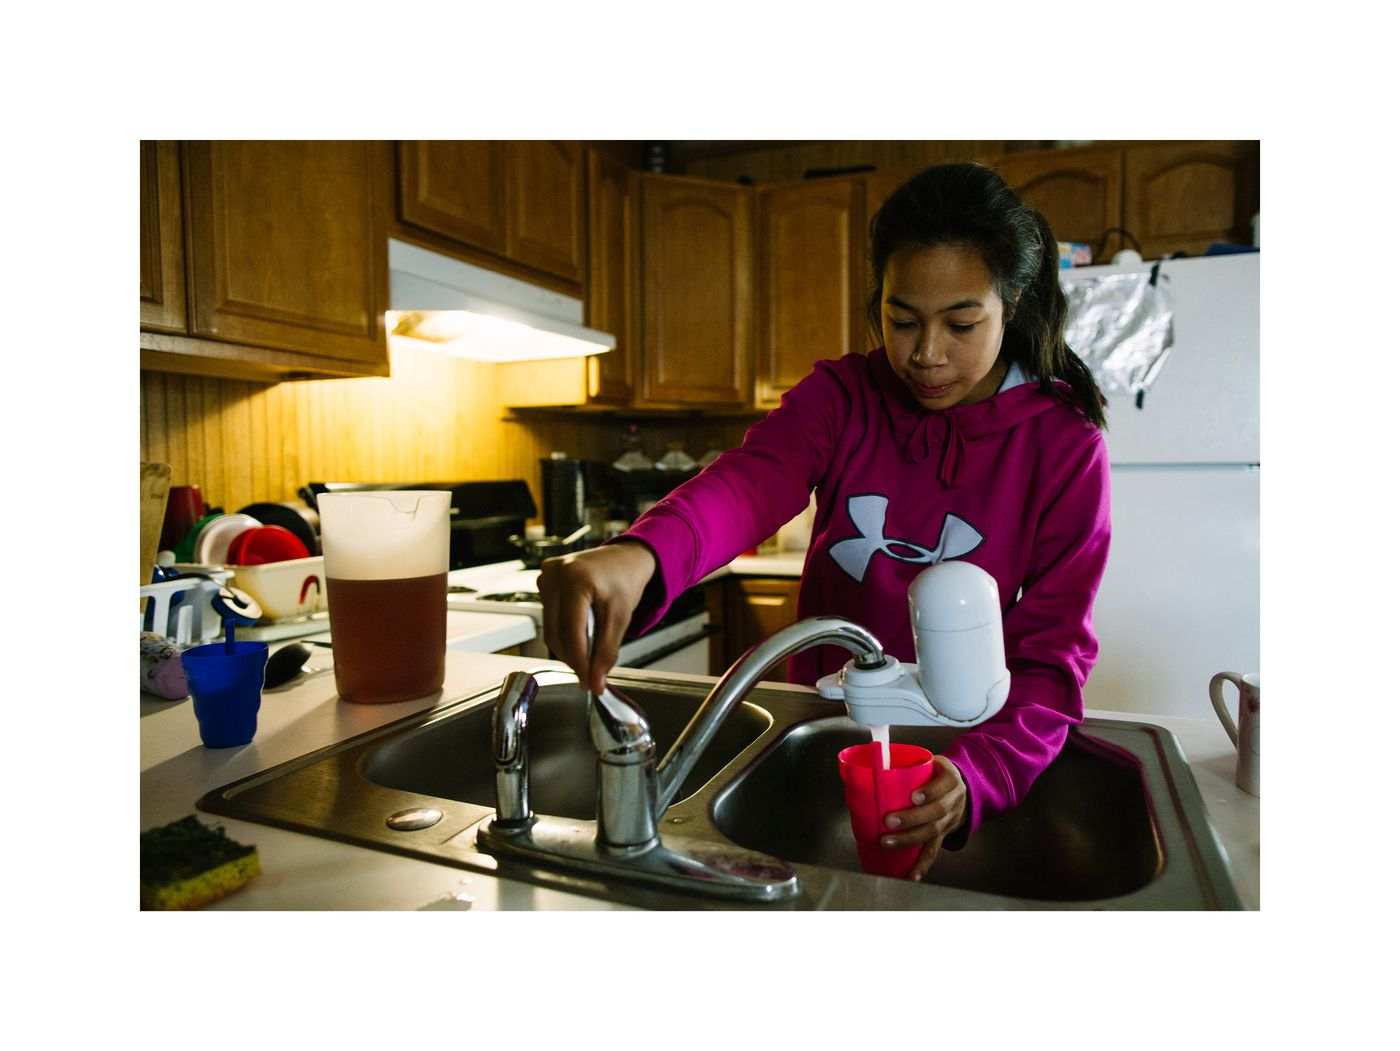 Zoya Ayaan using the newly installed kitchen sink with running water. (Photo by Kerry Tasker)